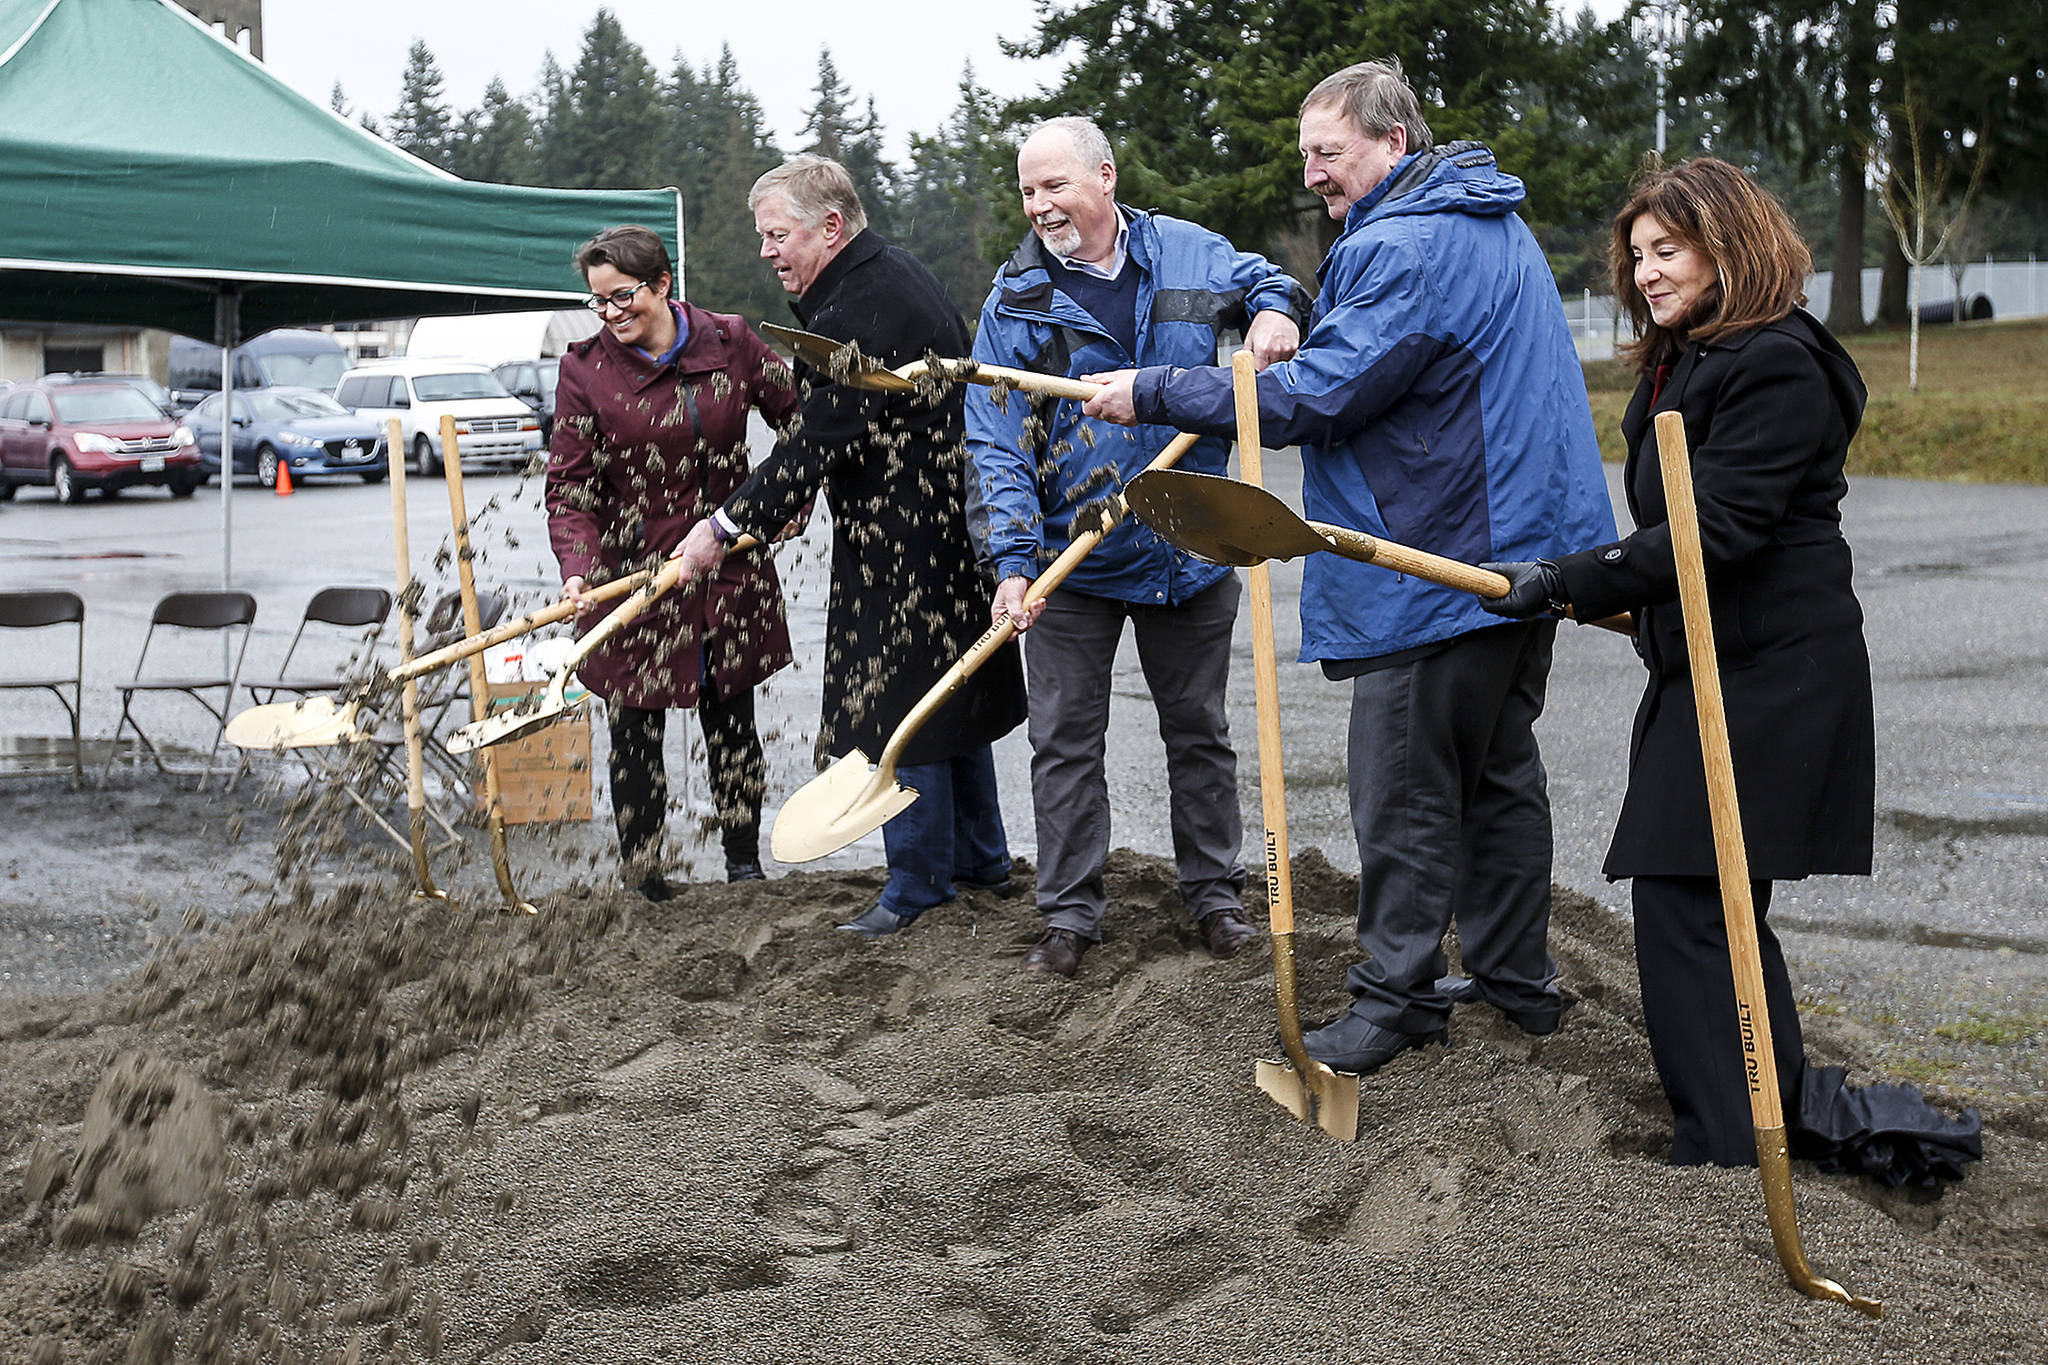 Community leaders, including Everett Mayor Cassie Franklin (left) and Snohomish County Executive Dave Somers (center right), break ground Tuesday at the site of future low-barrier housing on Berkshire Drive in Everett. (Ian Terry / The Herald)